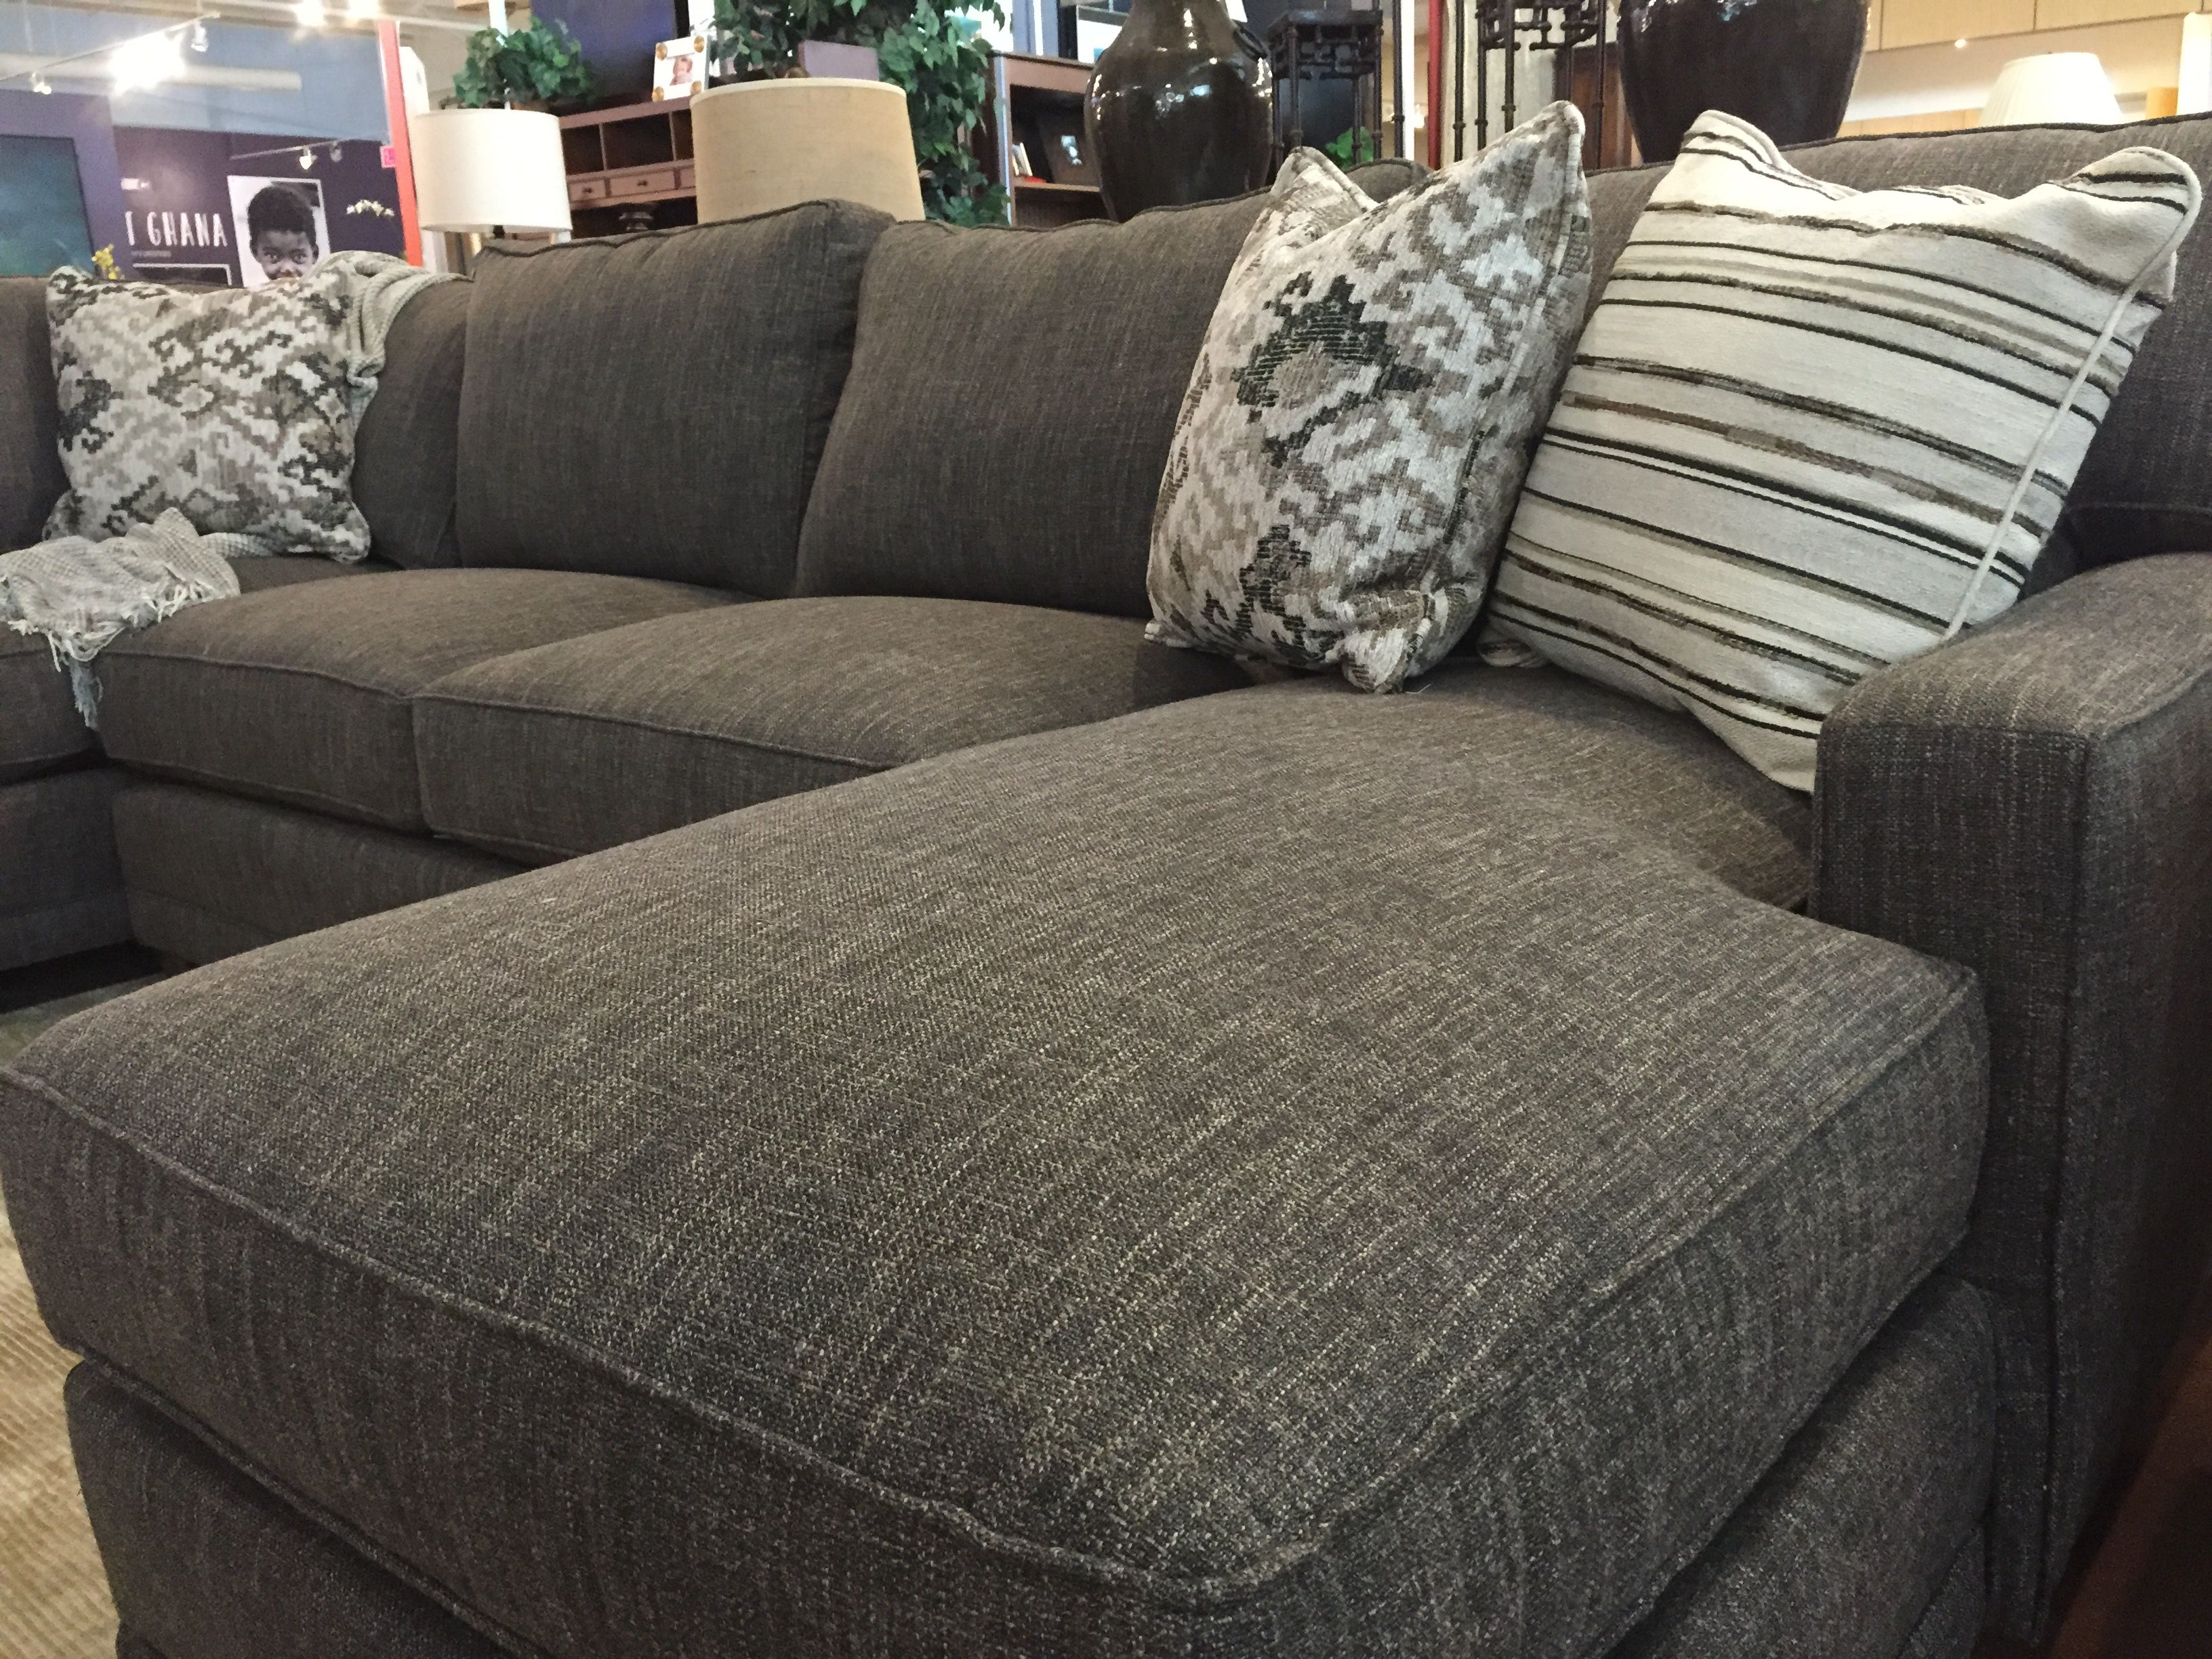 Knoxville Furniture Store Gray Sectional Sofa Knoxville Furniture Furniture Shop In Knoxville Tn Fin Lifestyle Furniture Furniture Grey Sectional Sofa